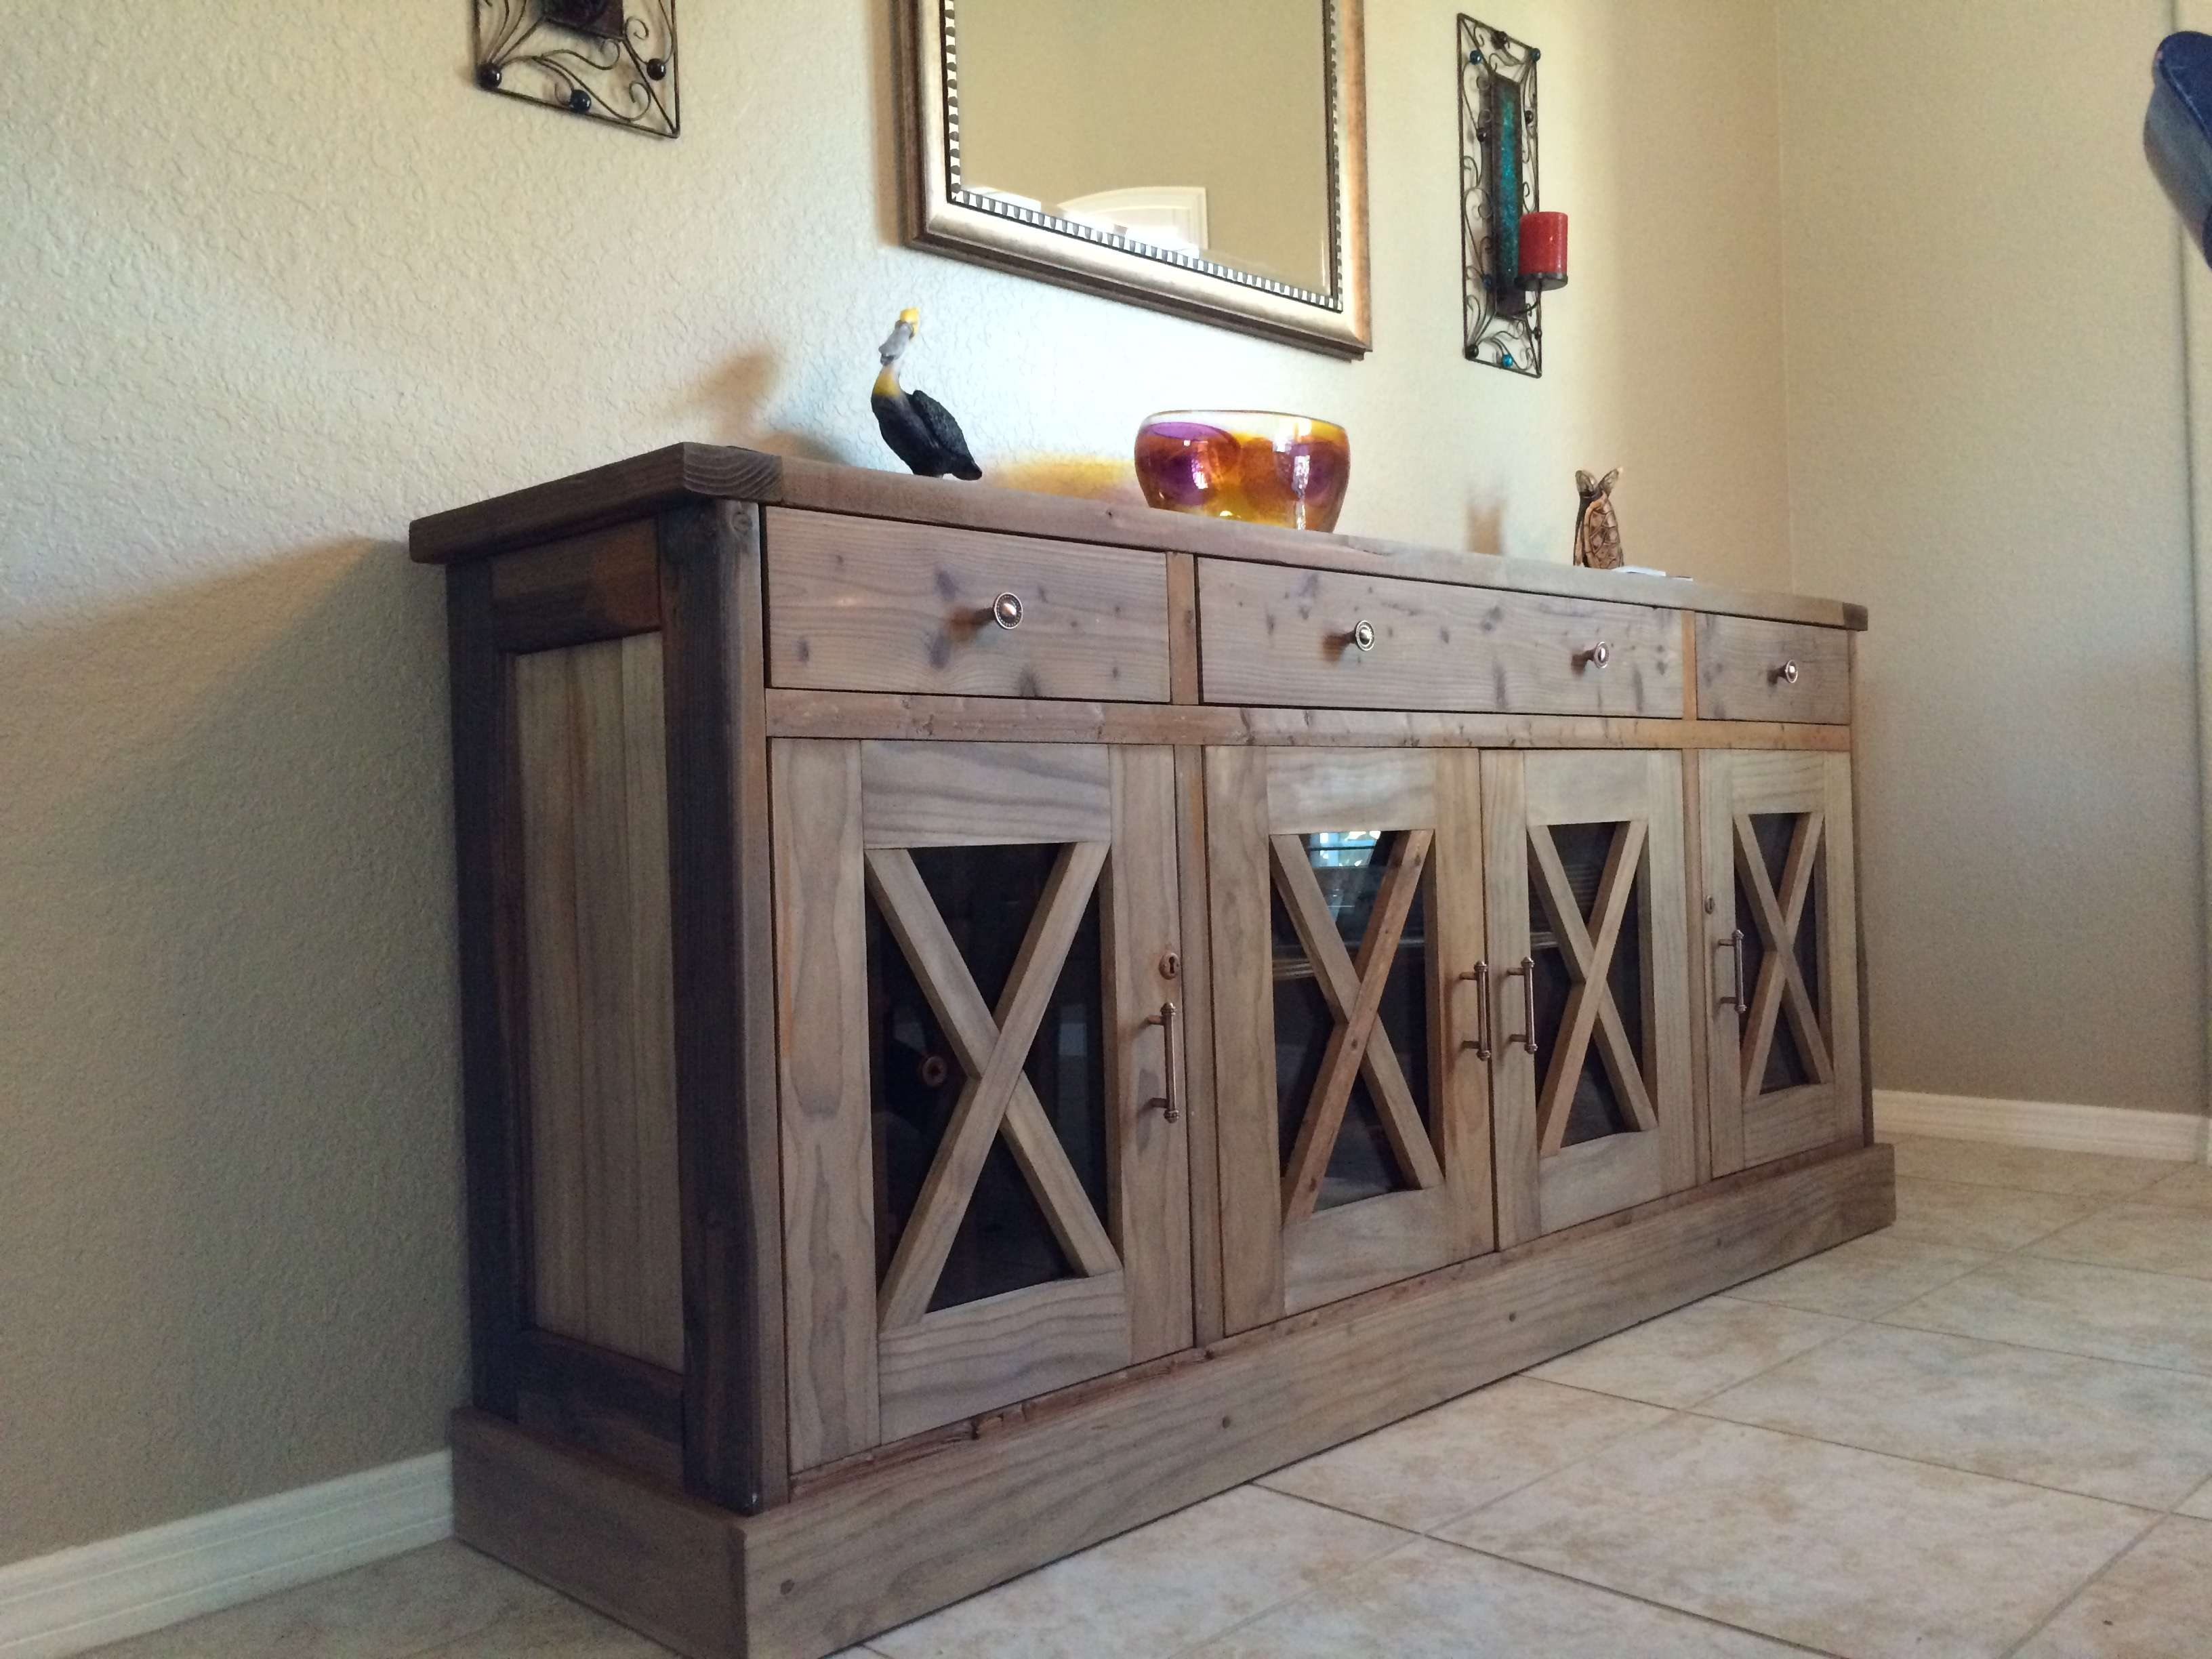 Ana White | Dining Room Sideboard – Diy Projects With Regard To Diy Sideboards (View 1 of 20)